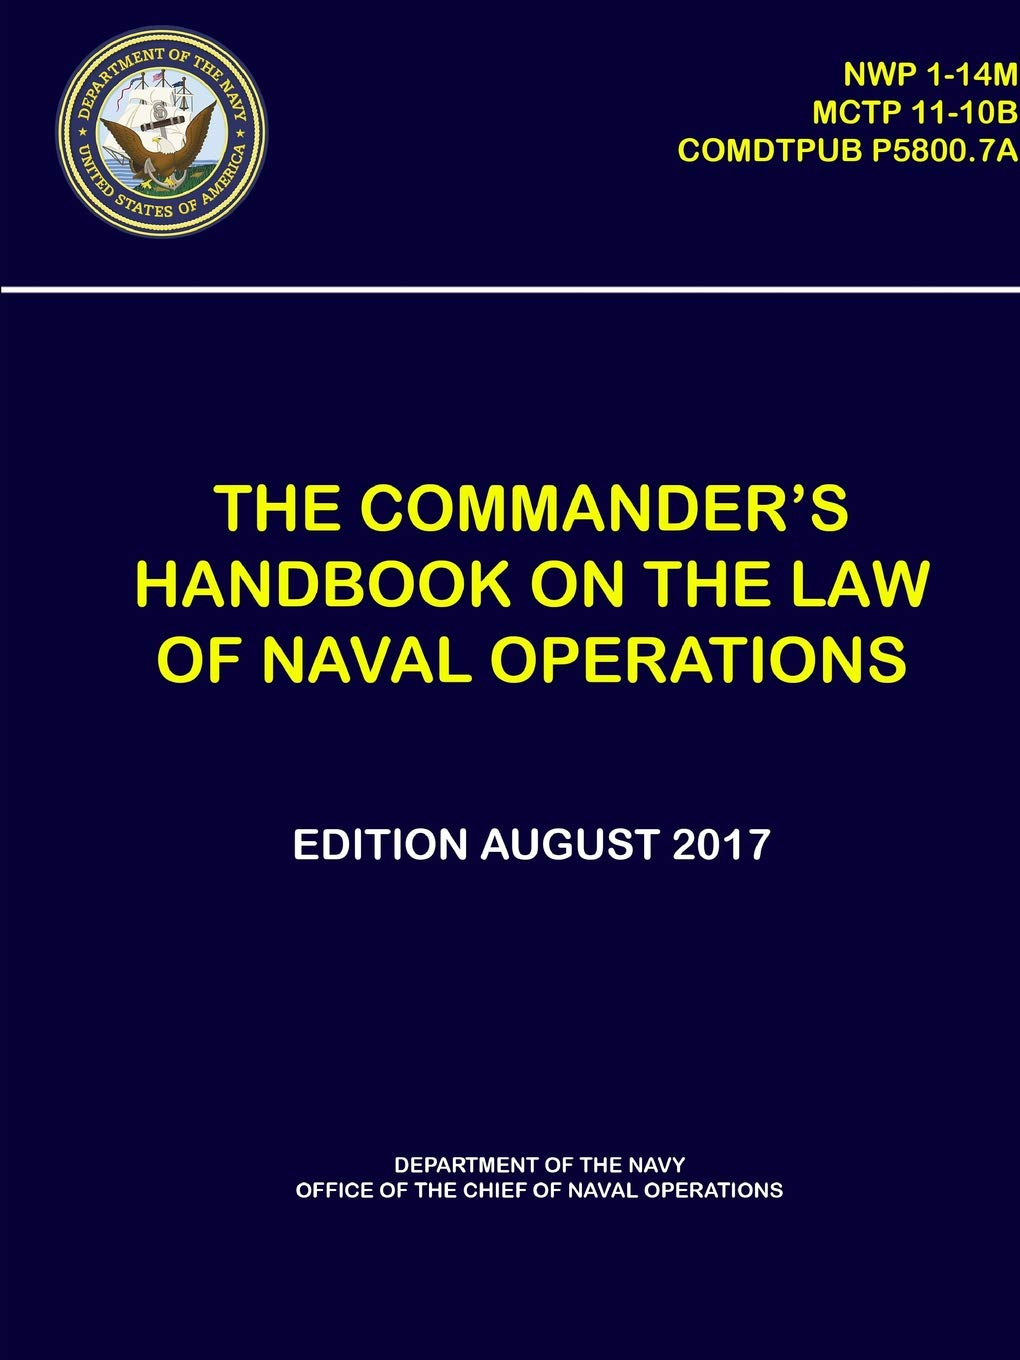 The Commander's Handbook on The Law of Naval Operations